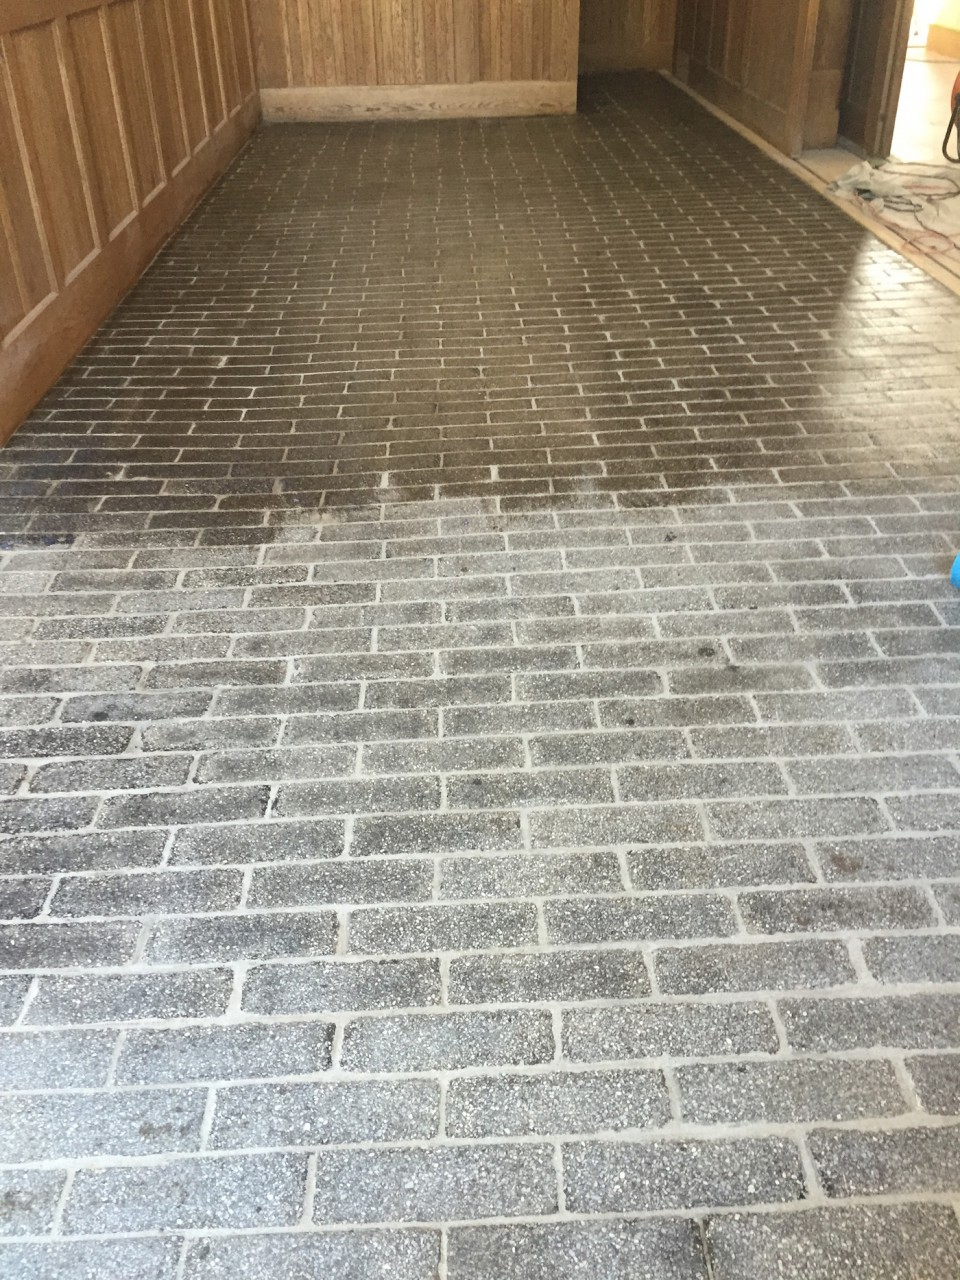 Restoring and polishing pavers in Newport, RI.